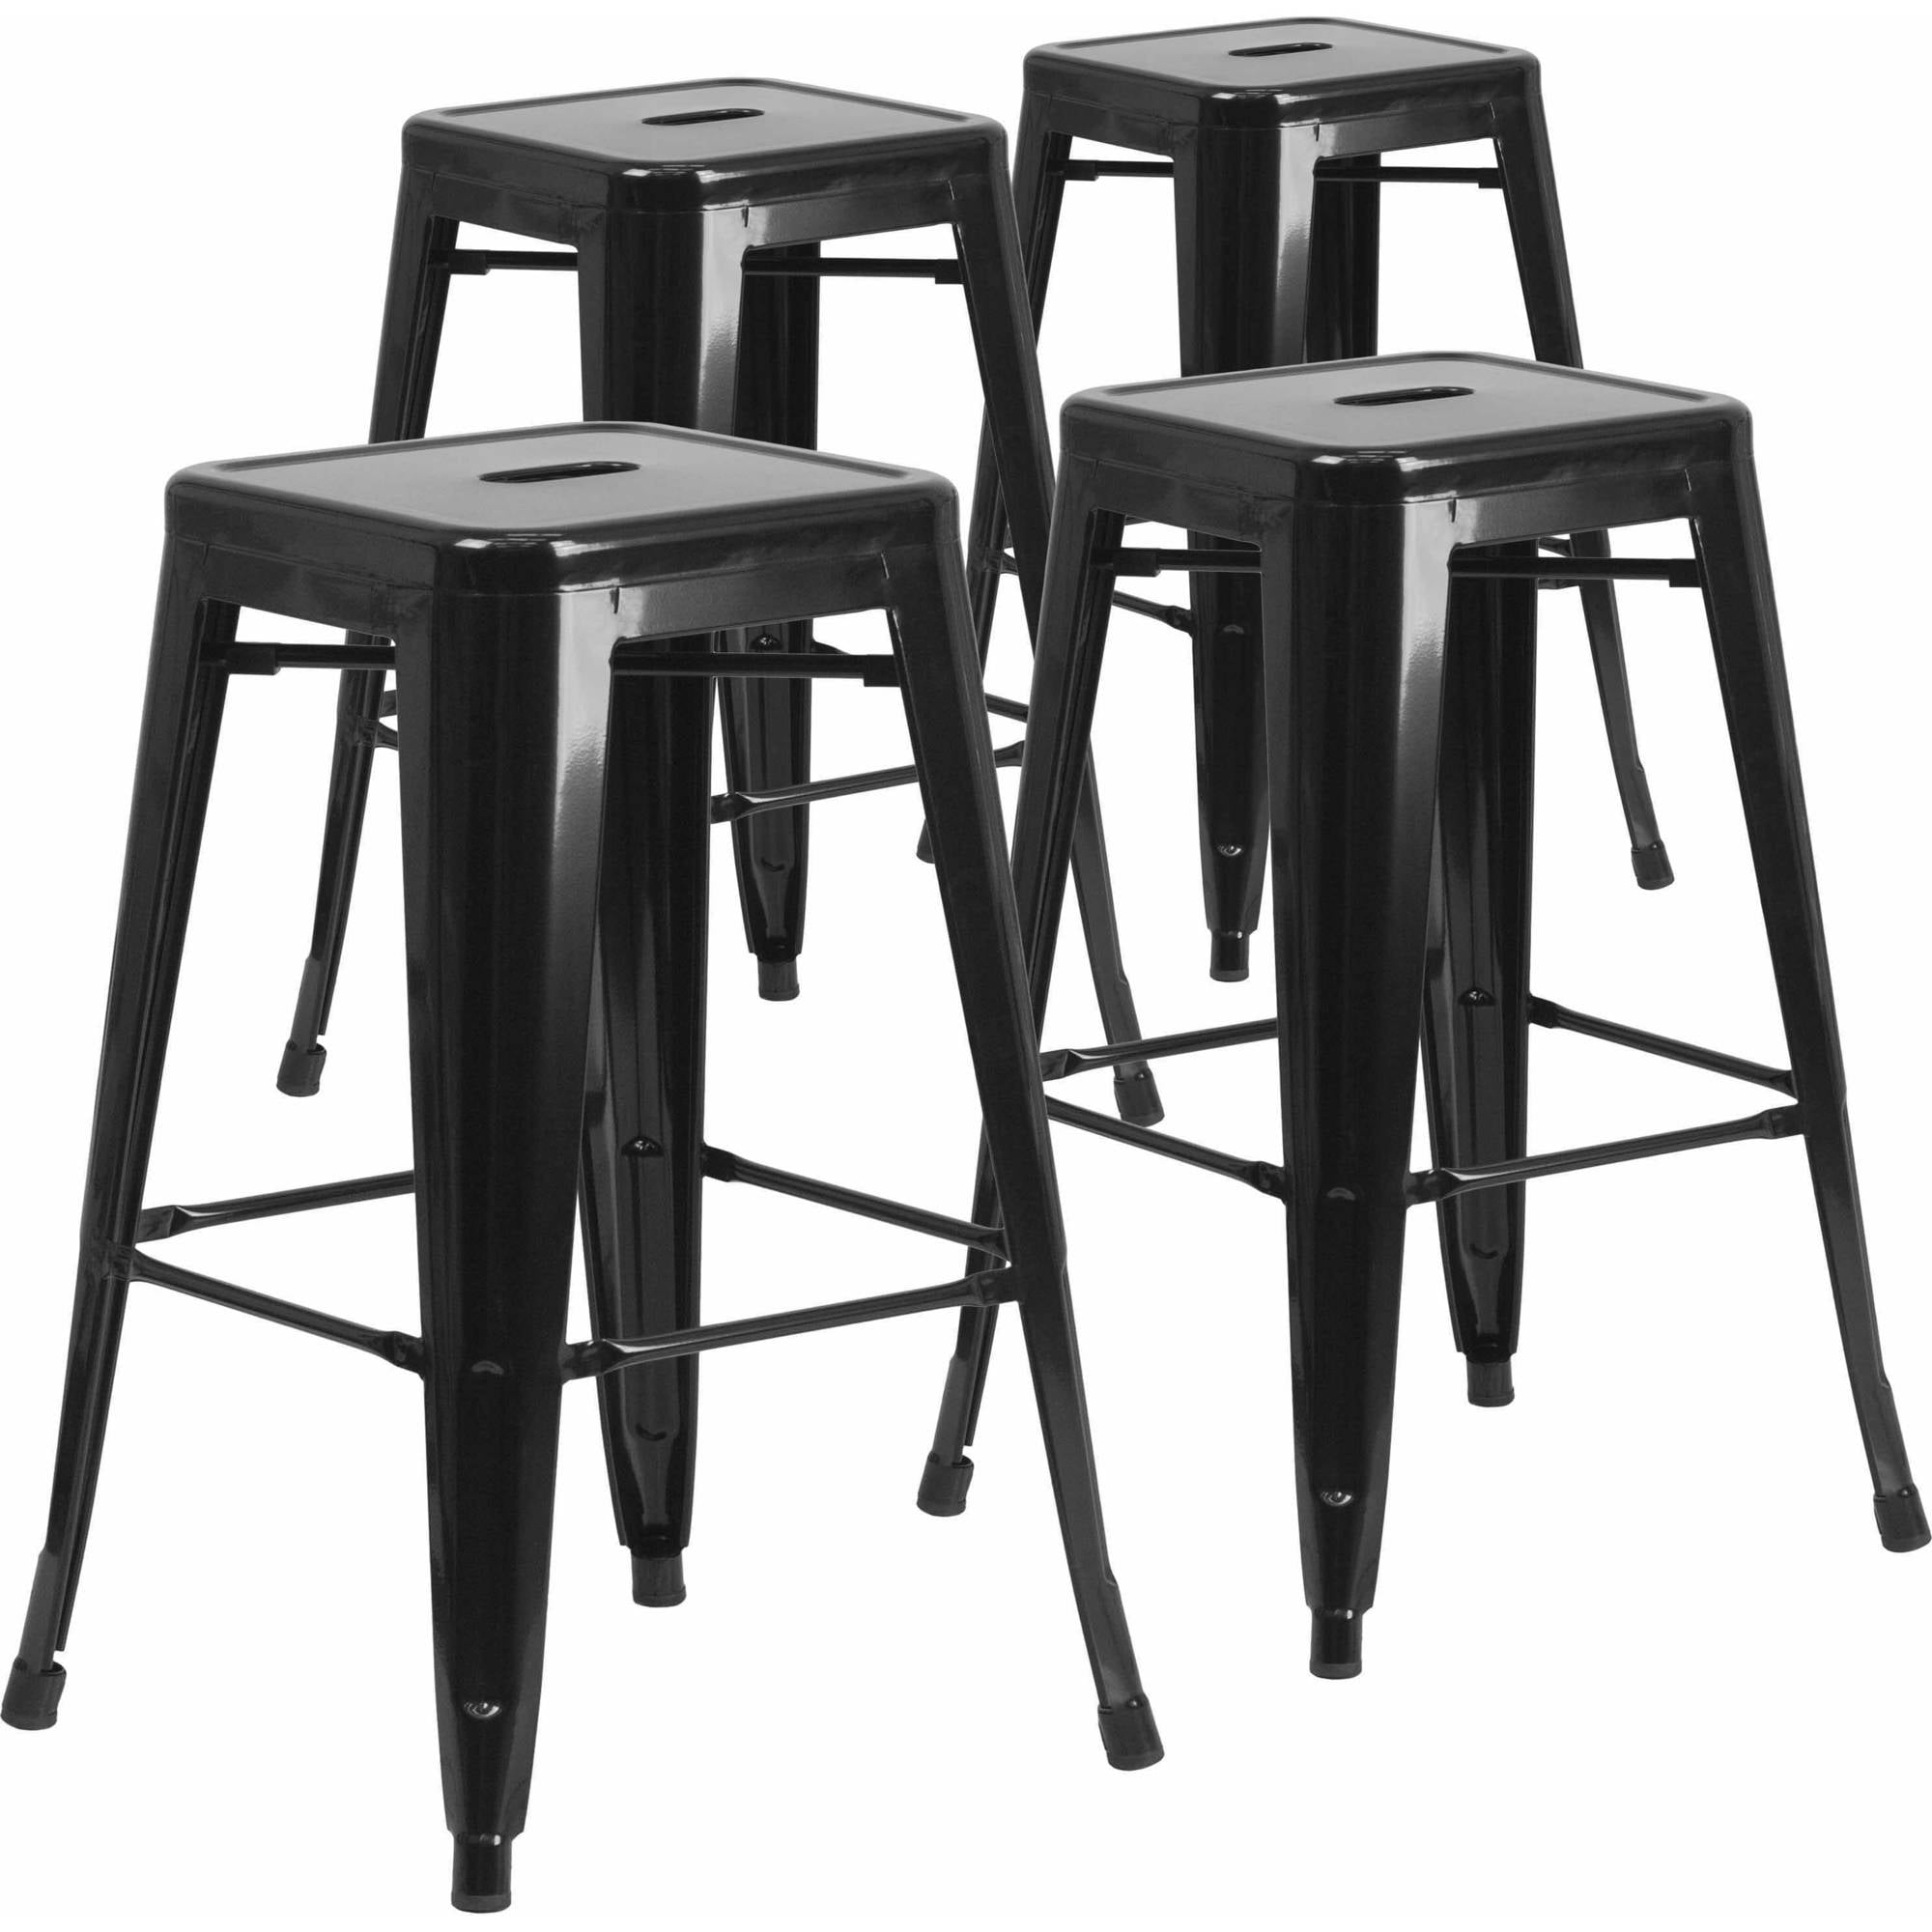 Better Homes and Gardens Adjustable Barstool Oil Rubbed Bronze - Walmart .com  sc 1 st  Walmart : walmart wooden stool - islam-shia.org